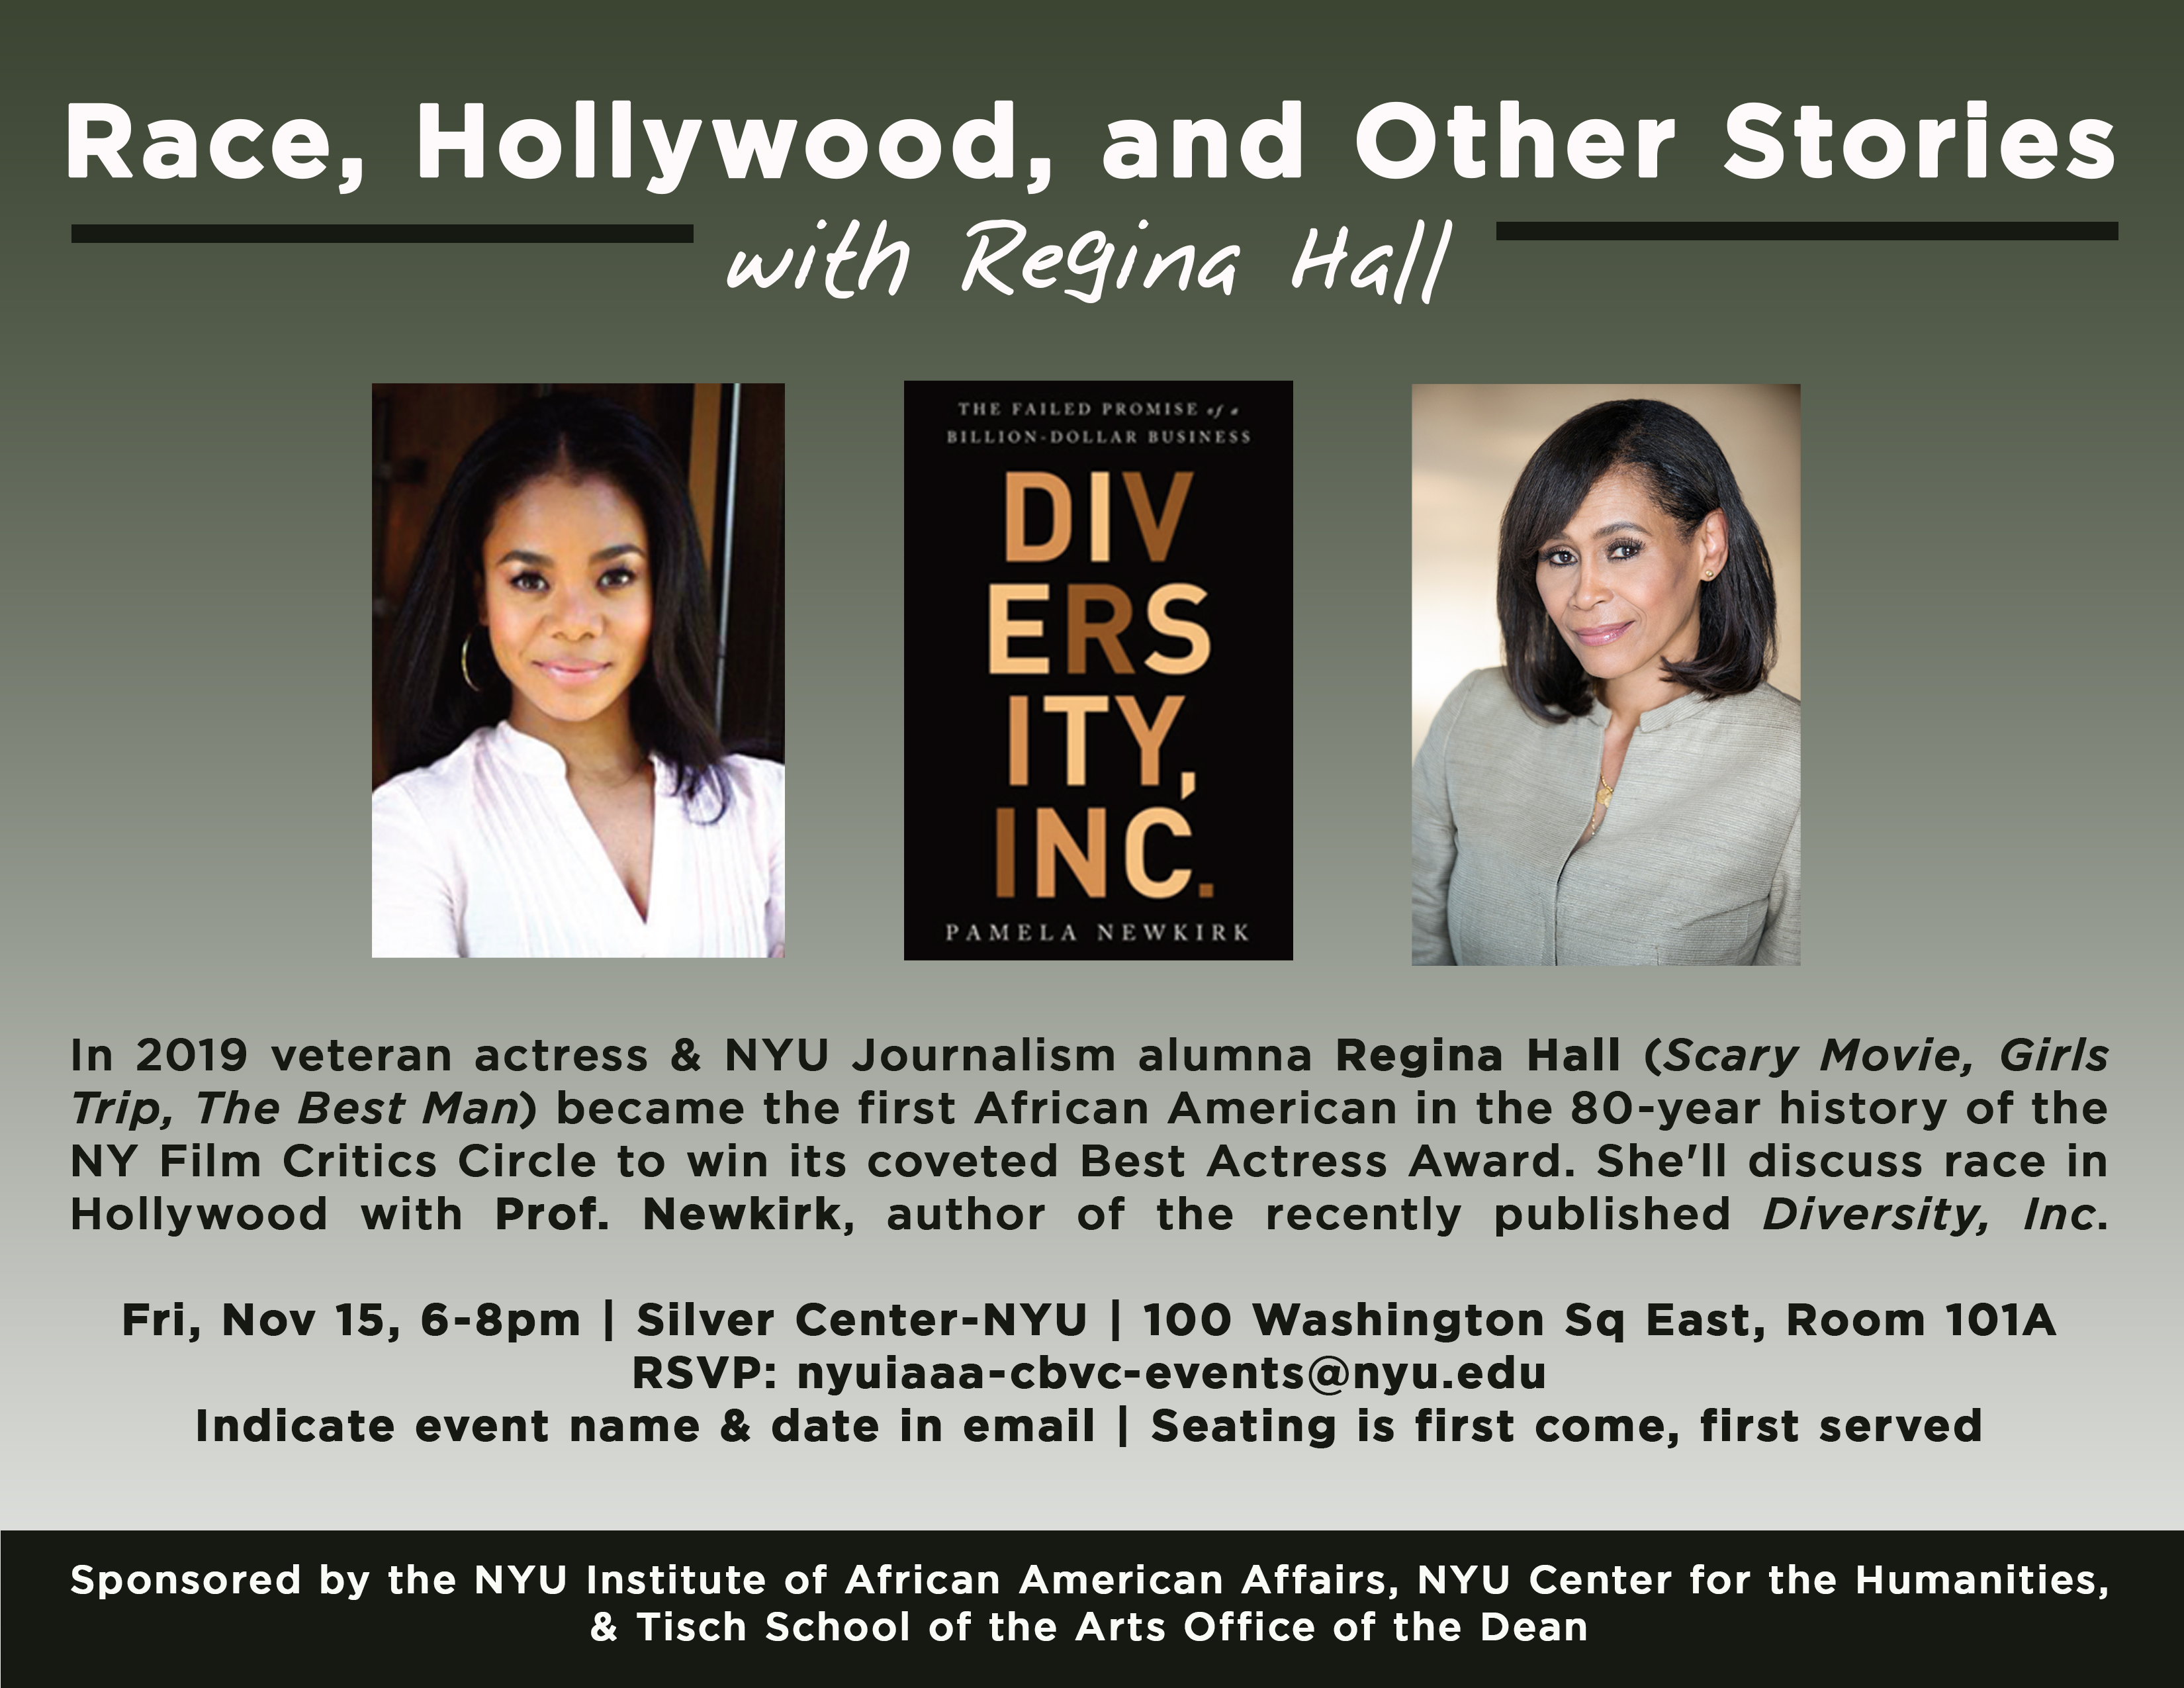 Race, Hollywood, and Other Stories with Regina Hall